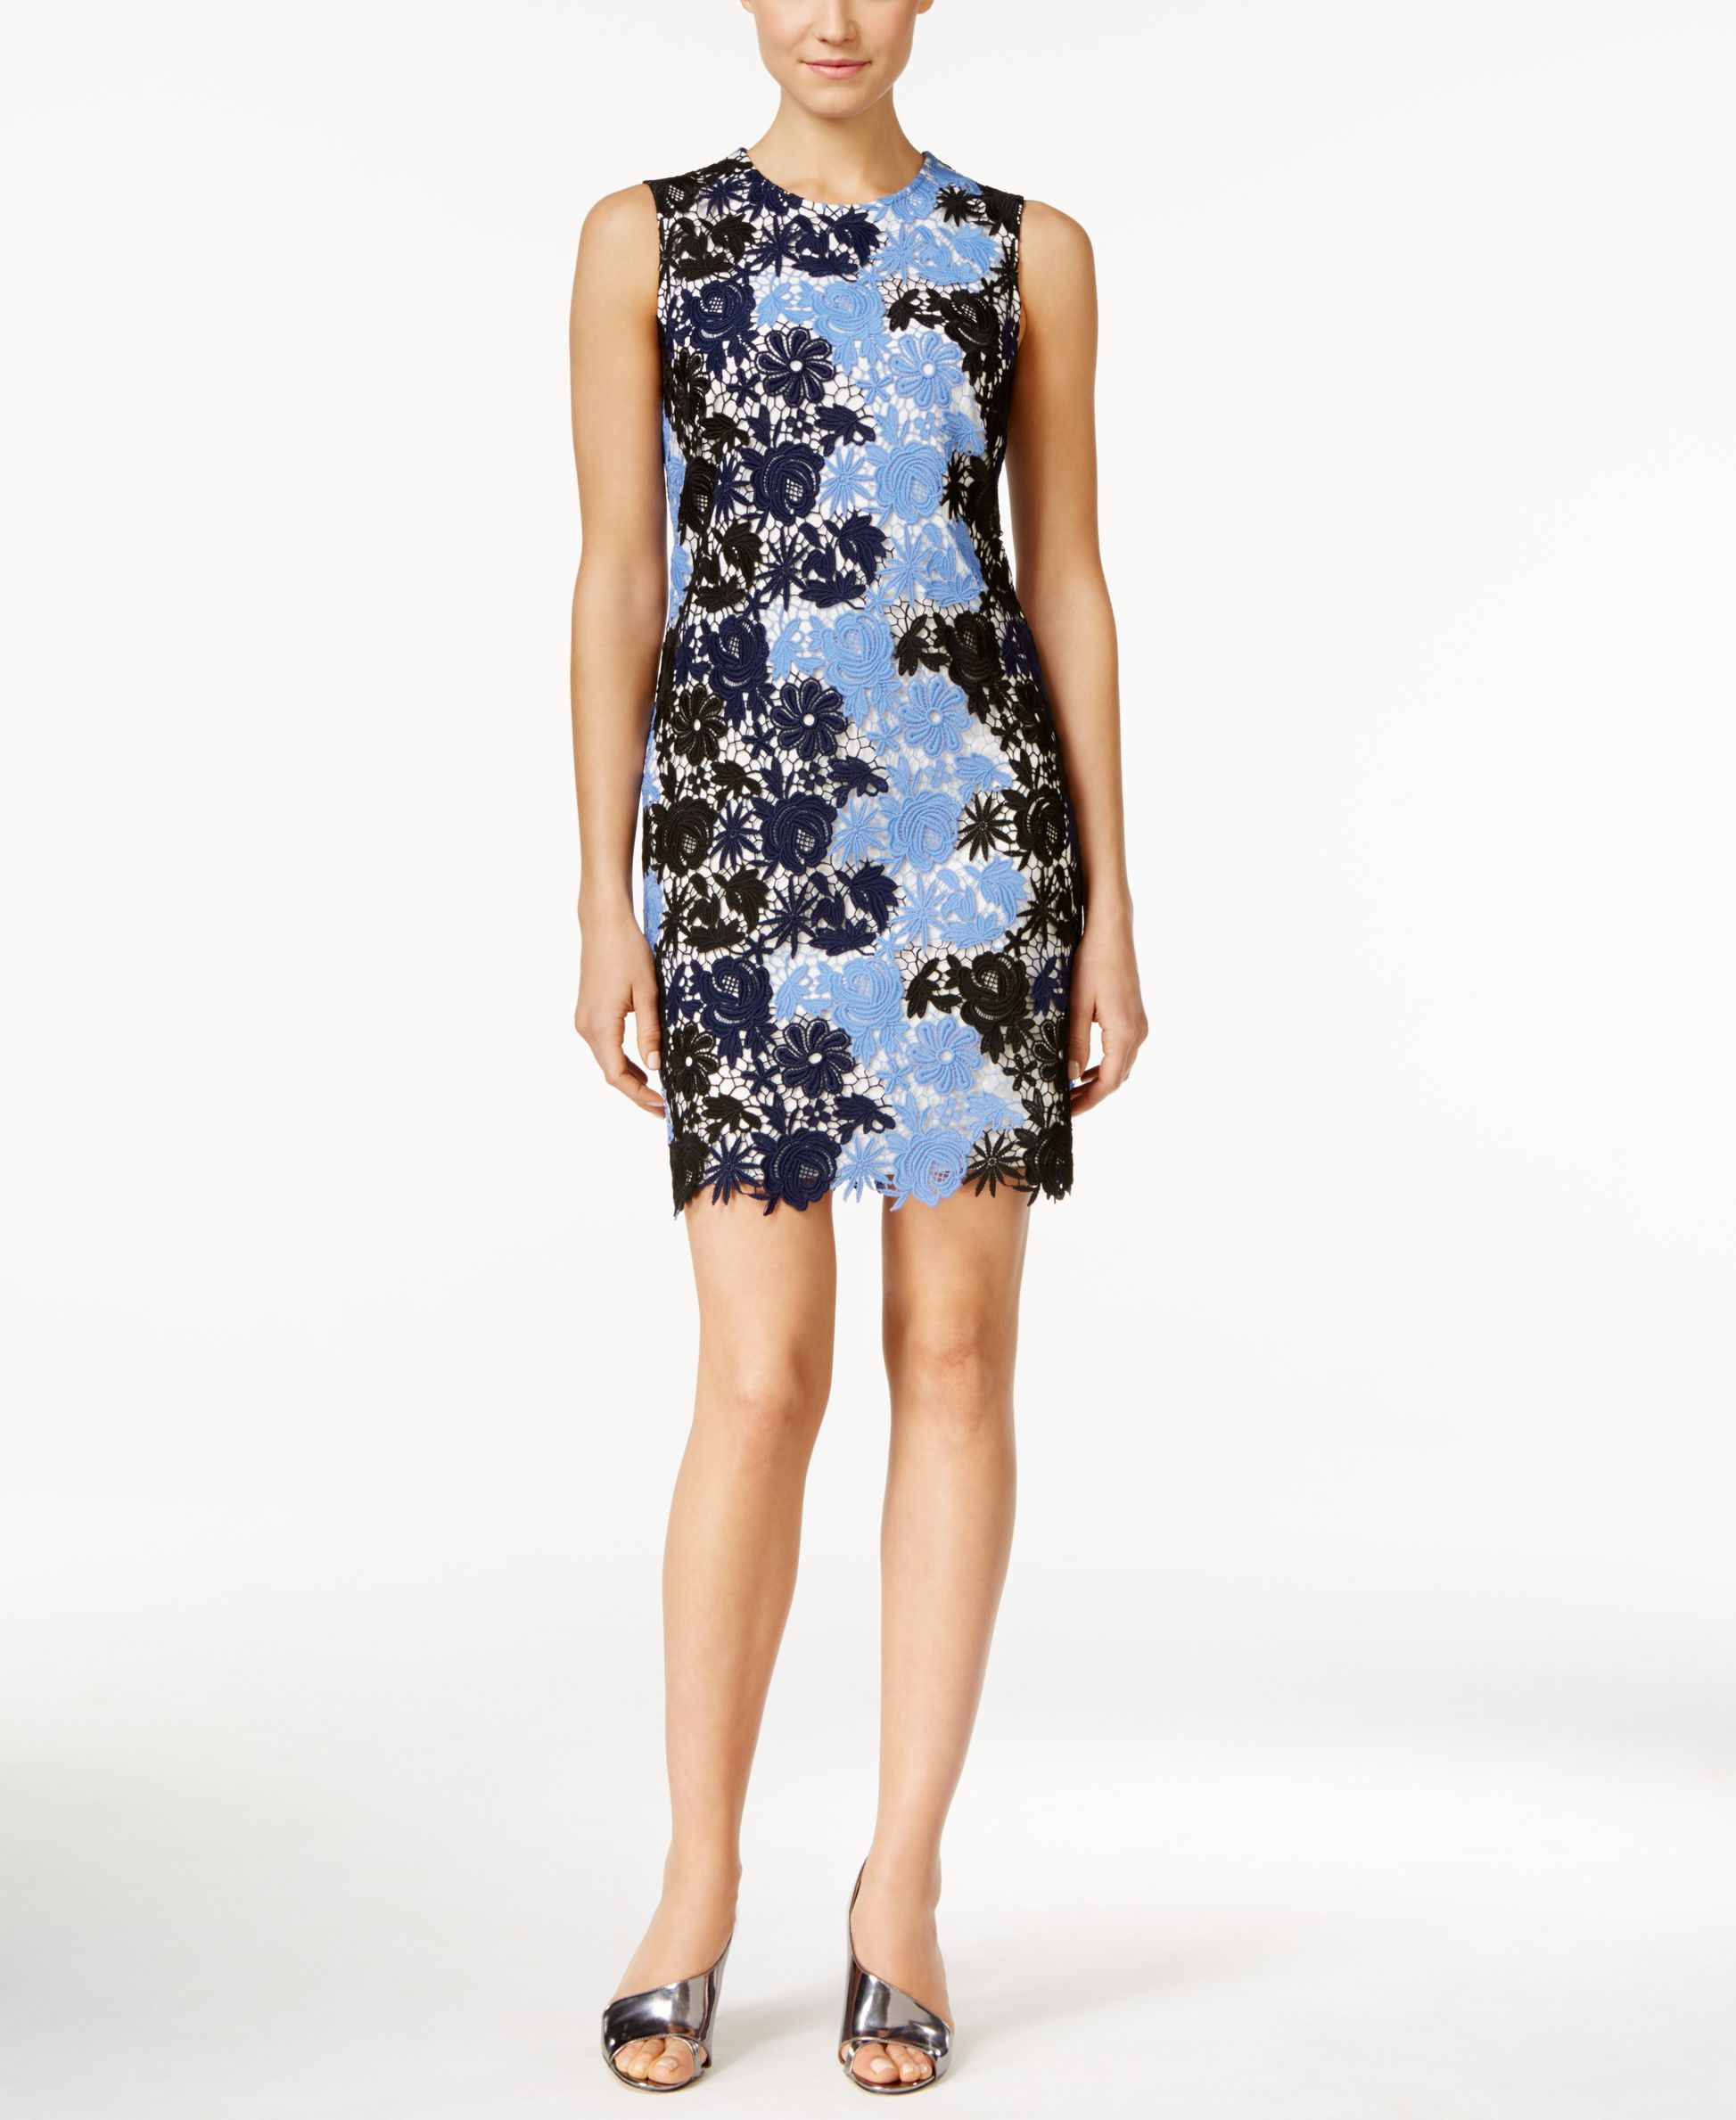 0f251c1b Calvin Klein Sleeveless Floral Lace Sheath Dress   Products   Lace ...